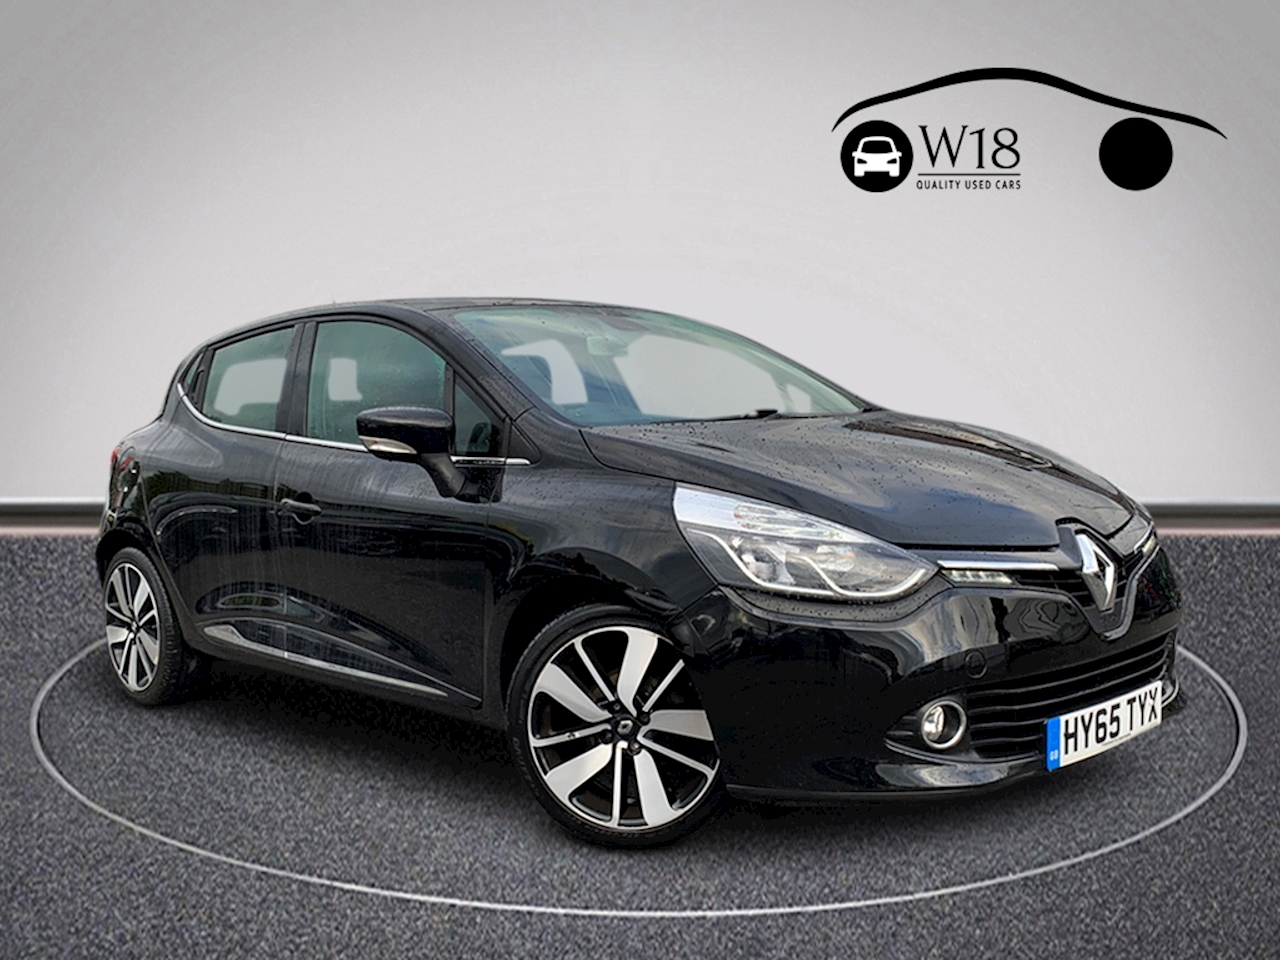 Clio Dynamique S Nav 1.5 5dr Hatchback Manual Diesel